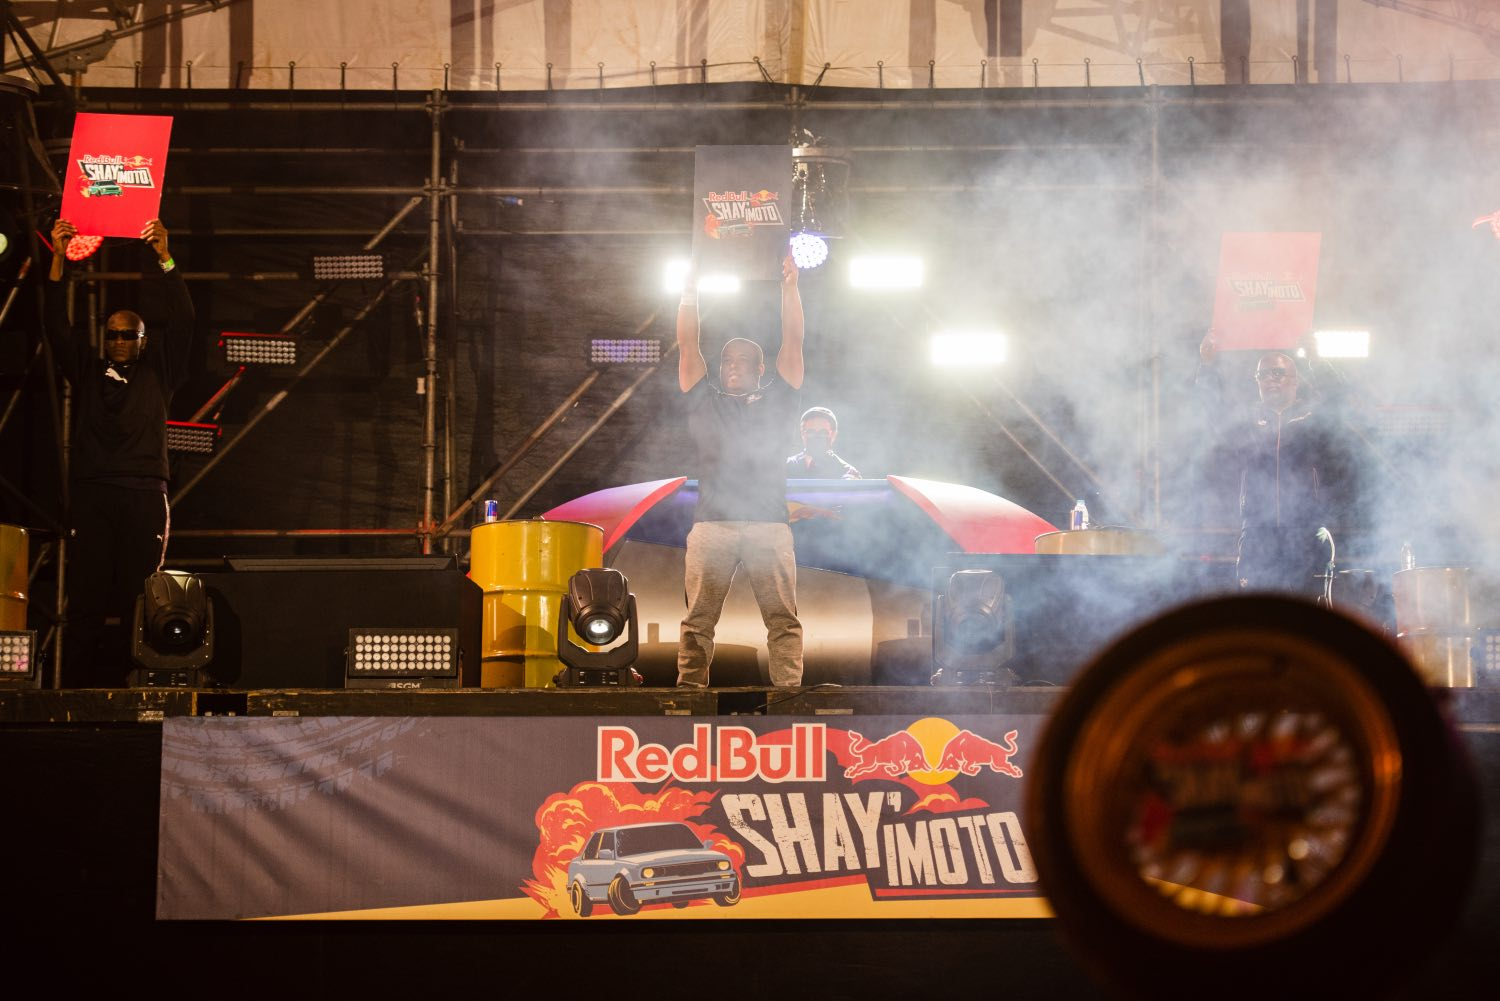 Judges seen during Red Bull Shay' iMoto in Johannesburg